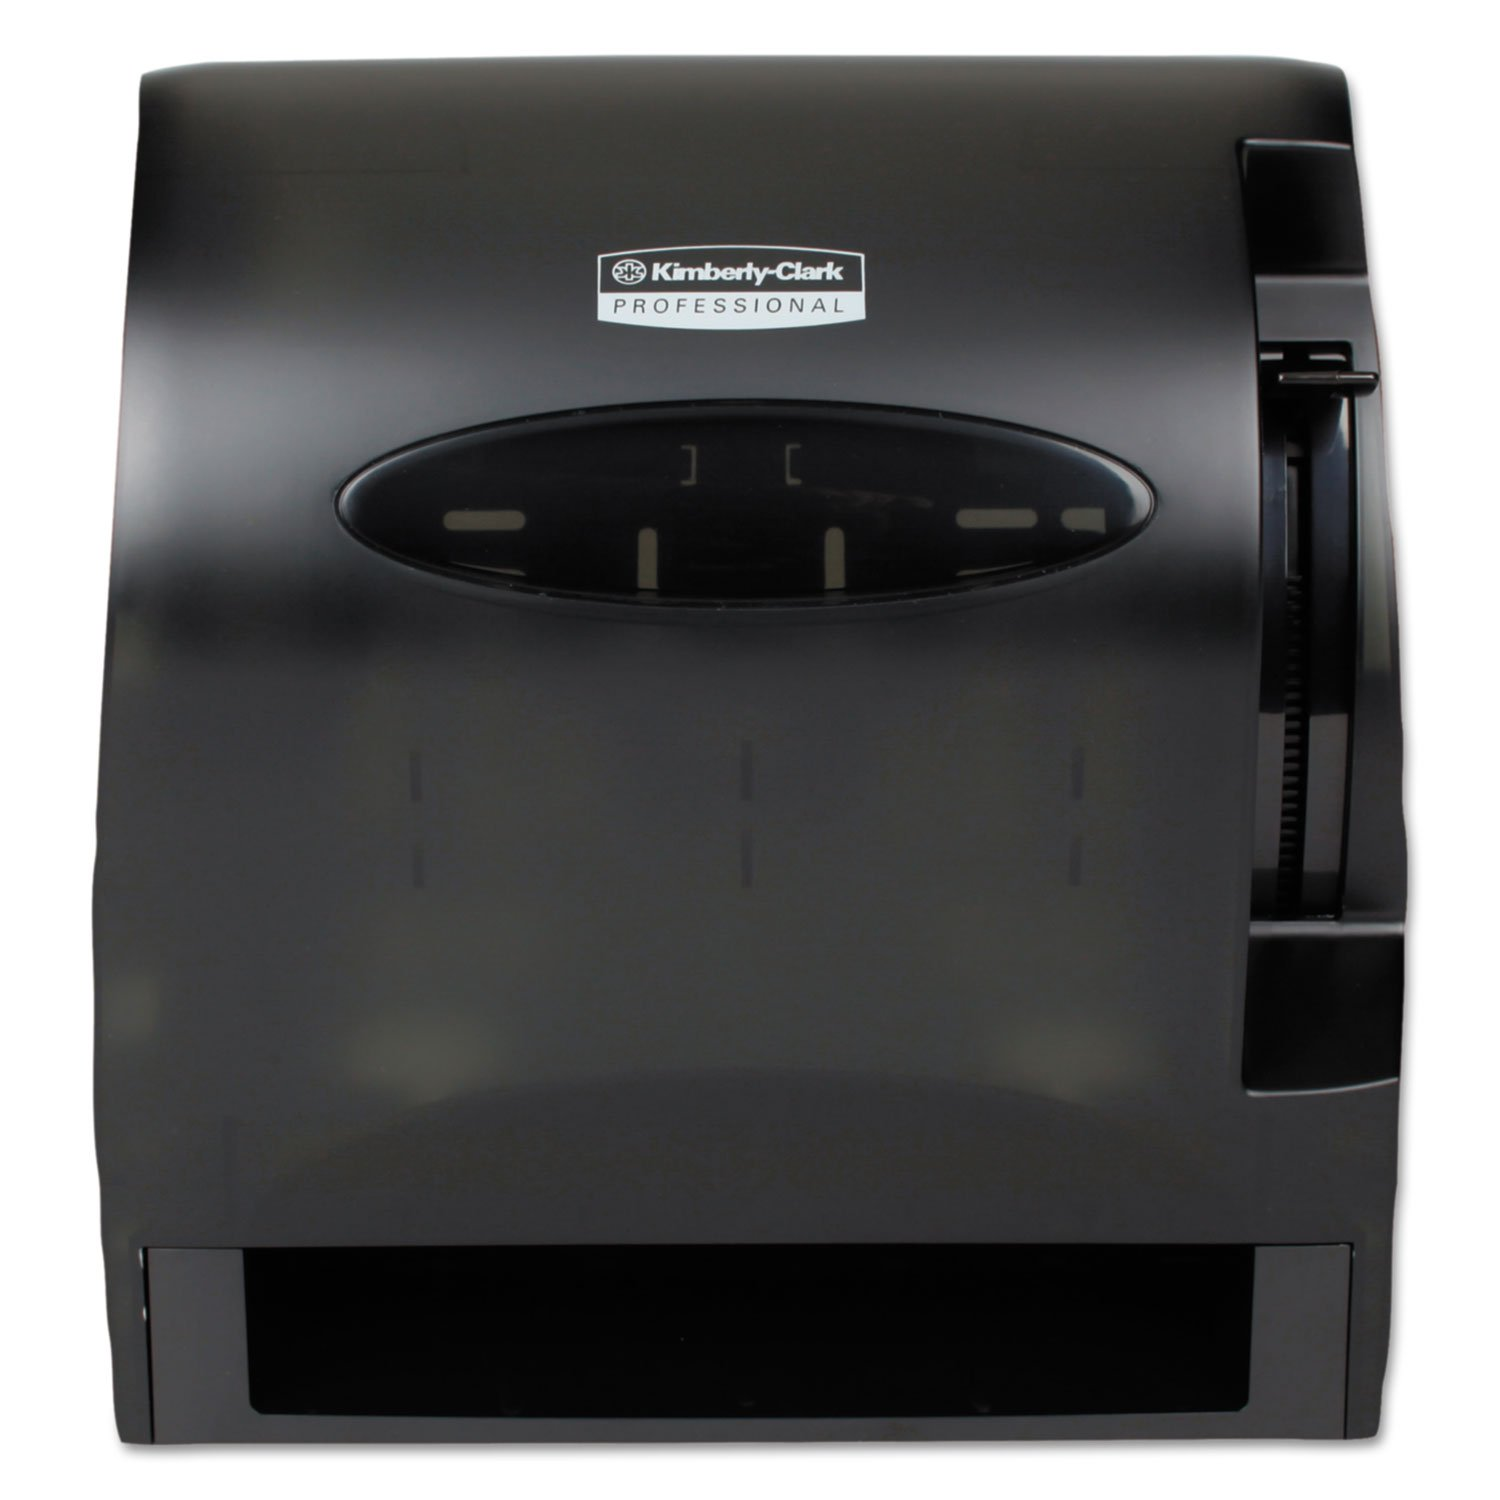 KCC09765 - In-sight Lev-r-matic Roll Towel Dispenser, 13 3/10x9 4/5x13 1/2, Smoke by Kimberly-Clark